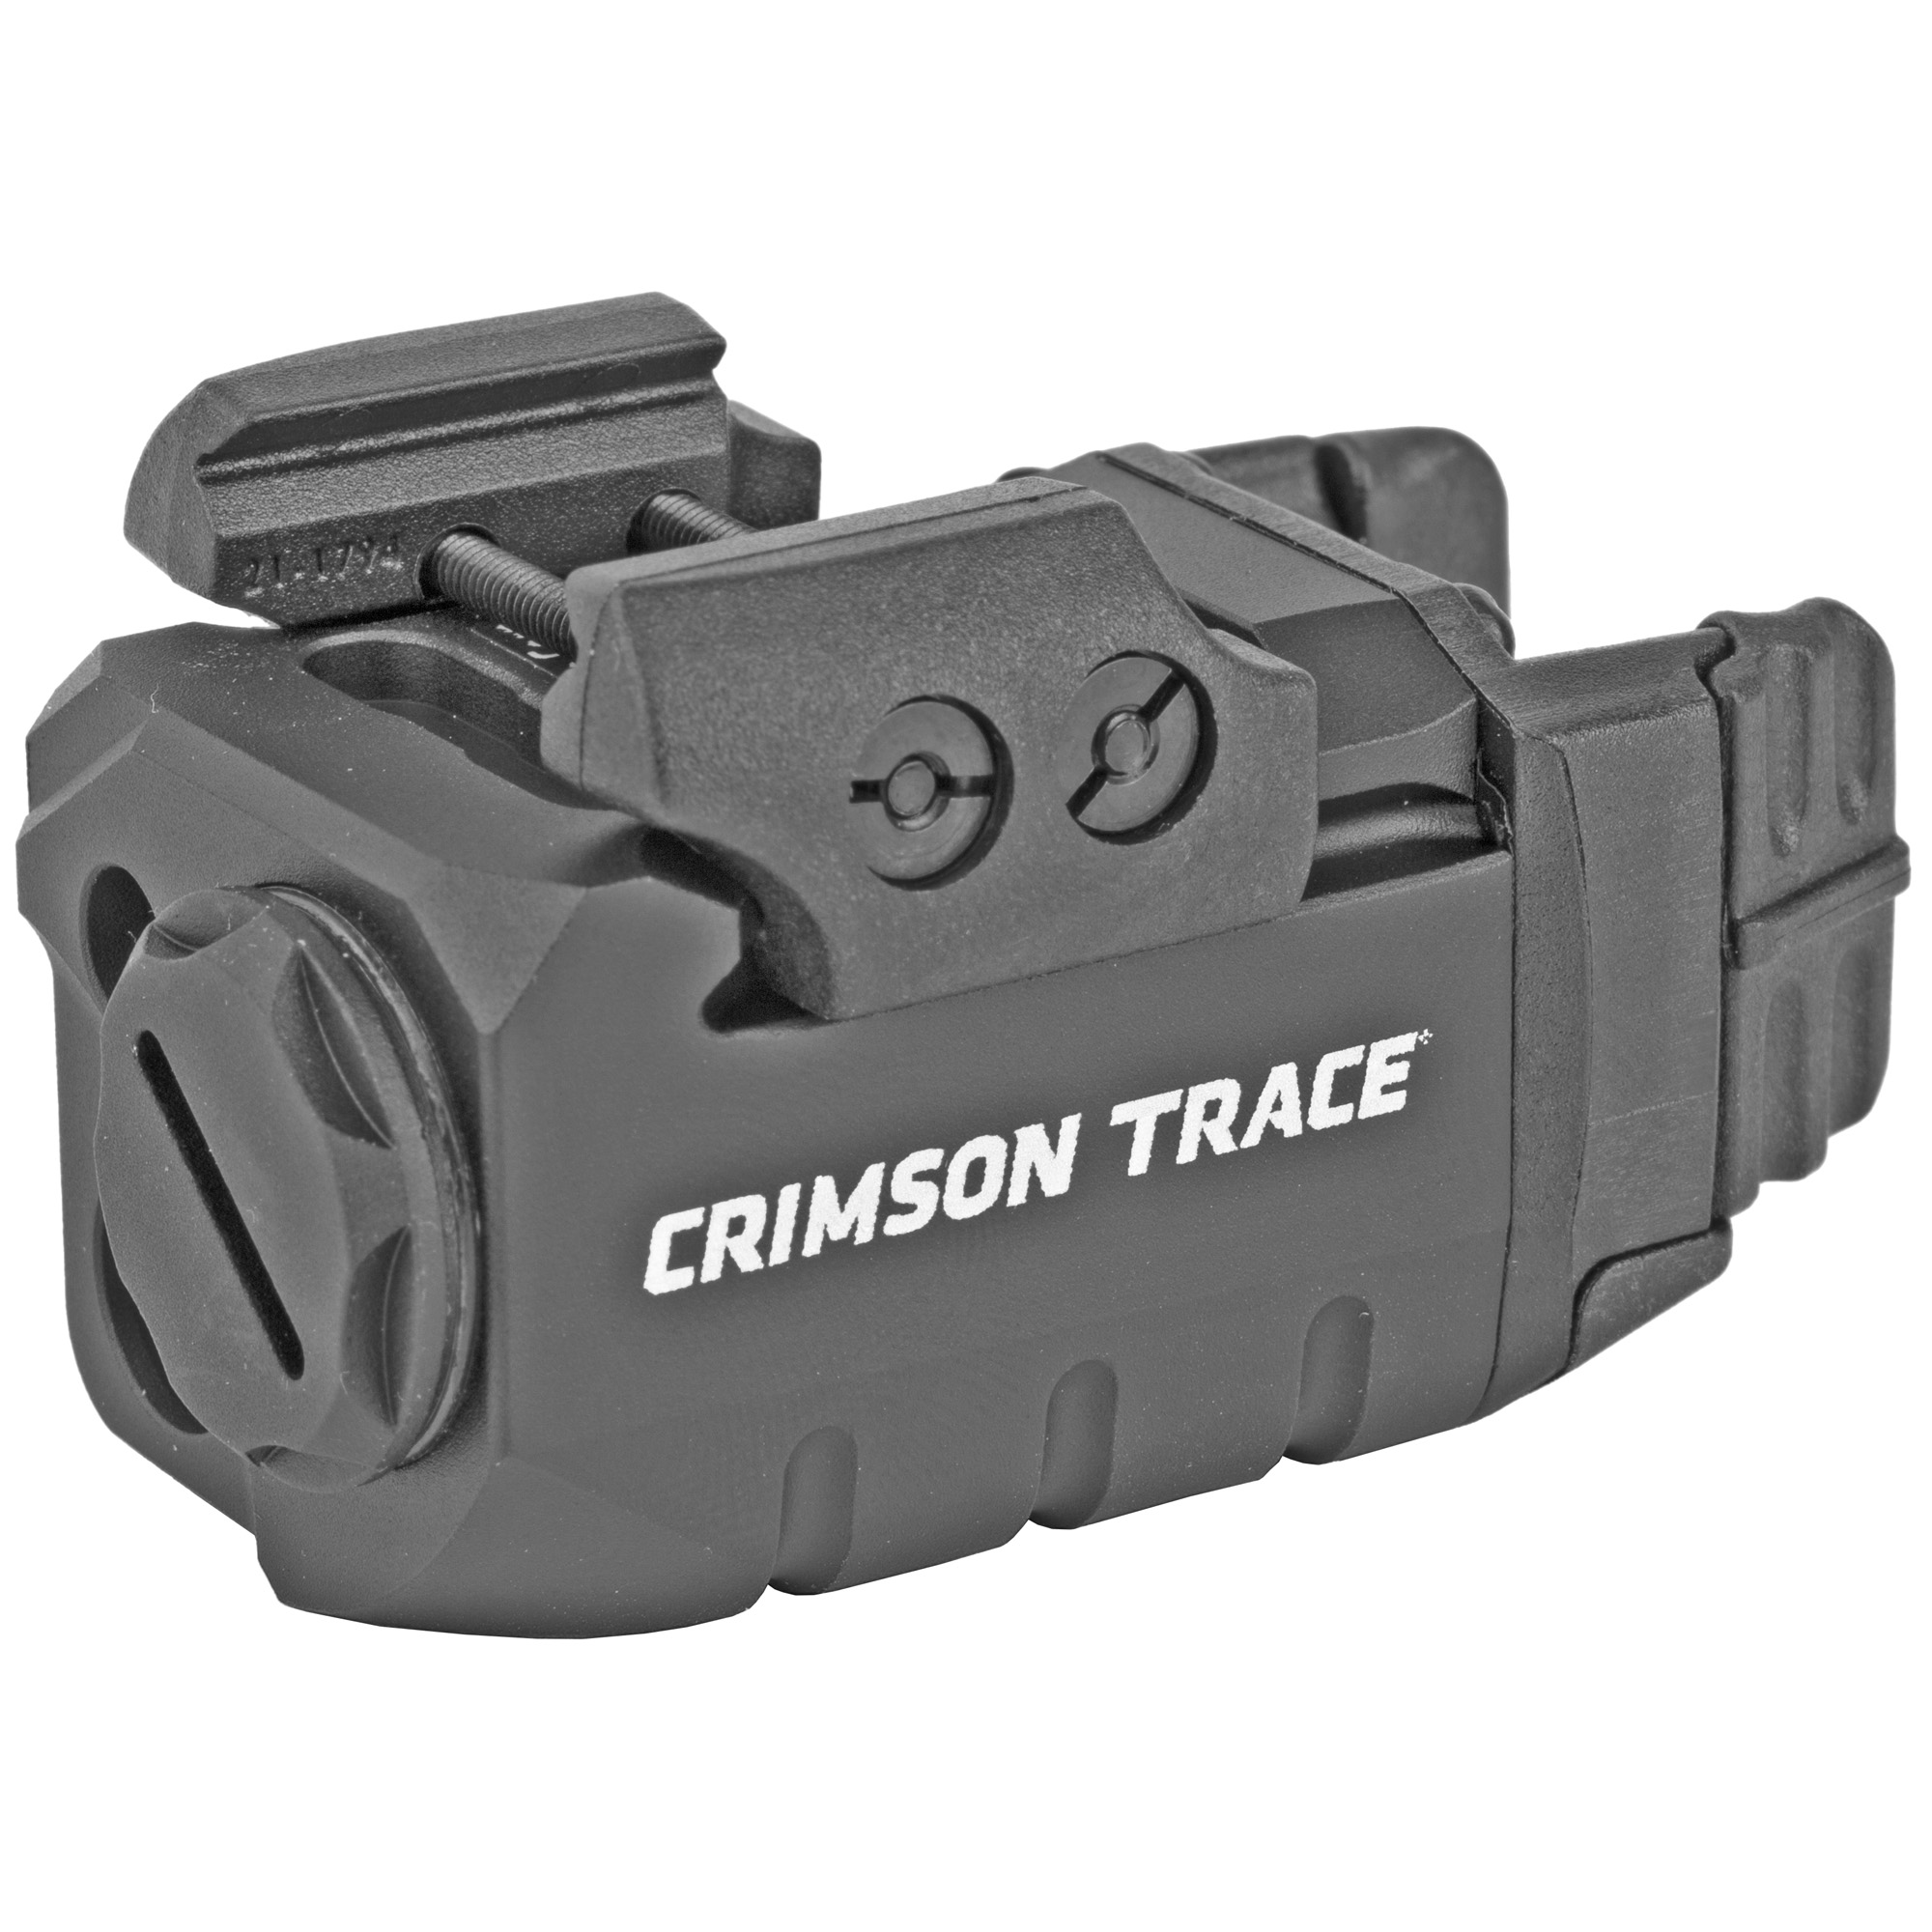 """The Rail Master(R) Pro Universal Red Laser Sight & Tactical Light combines two tactical tools in a single compact unit. The versatile unit is designed to fit most modern pistols"""" rifles and shotguns with an M1913 Picatinny or Weaver-style accessory rail. A powerful red laser anchors the unit and provides up to 2 hours of continuous use on a single CR2 Lithium battery. The Rail Master Pro also includes a powerful 100 Lumen white light for target identification. The unit features four operational modes including: Laser/Light Constant On"""" Laser Constant On"""" Light Constant On"""" and Laser w/Light Dazzler. Activation is instant"""" with Tap On"""" Tap Off controls and a programmed Auto Shut Off at five minutes to conserve battery life."""